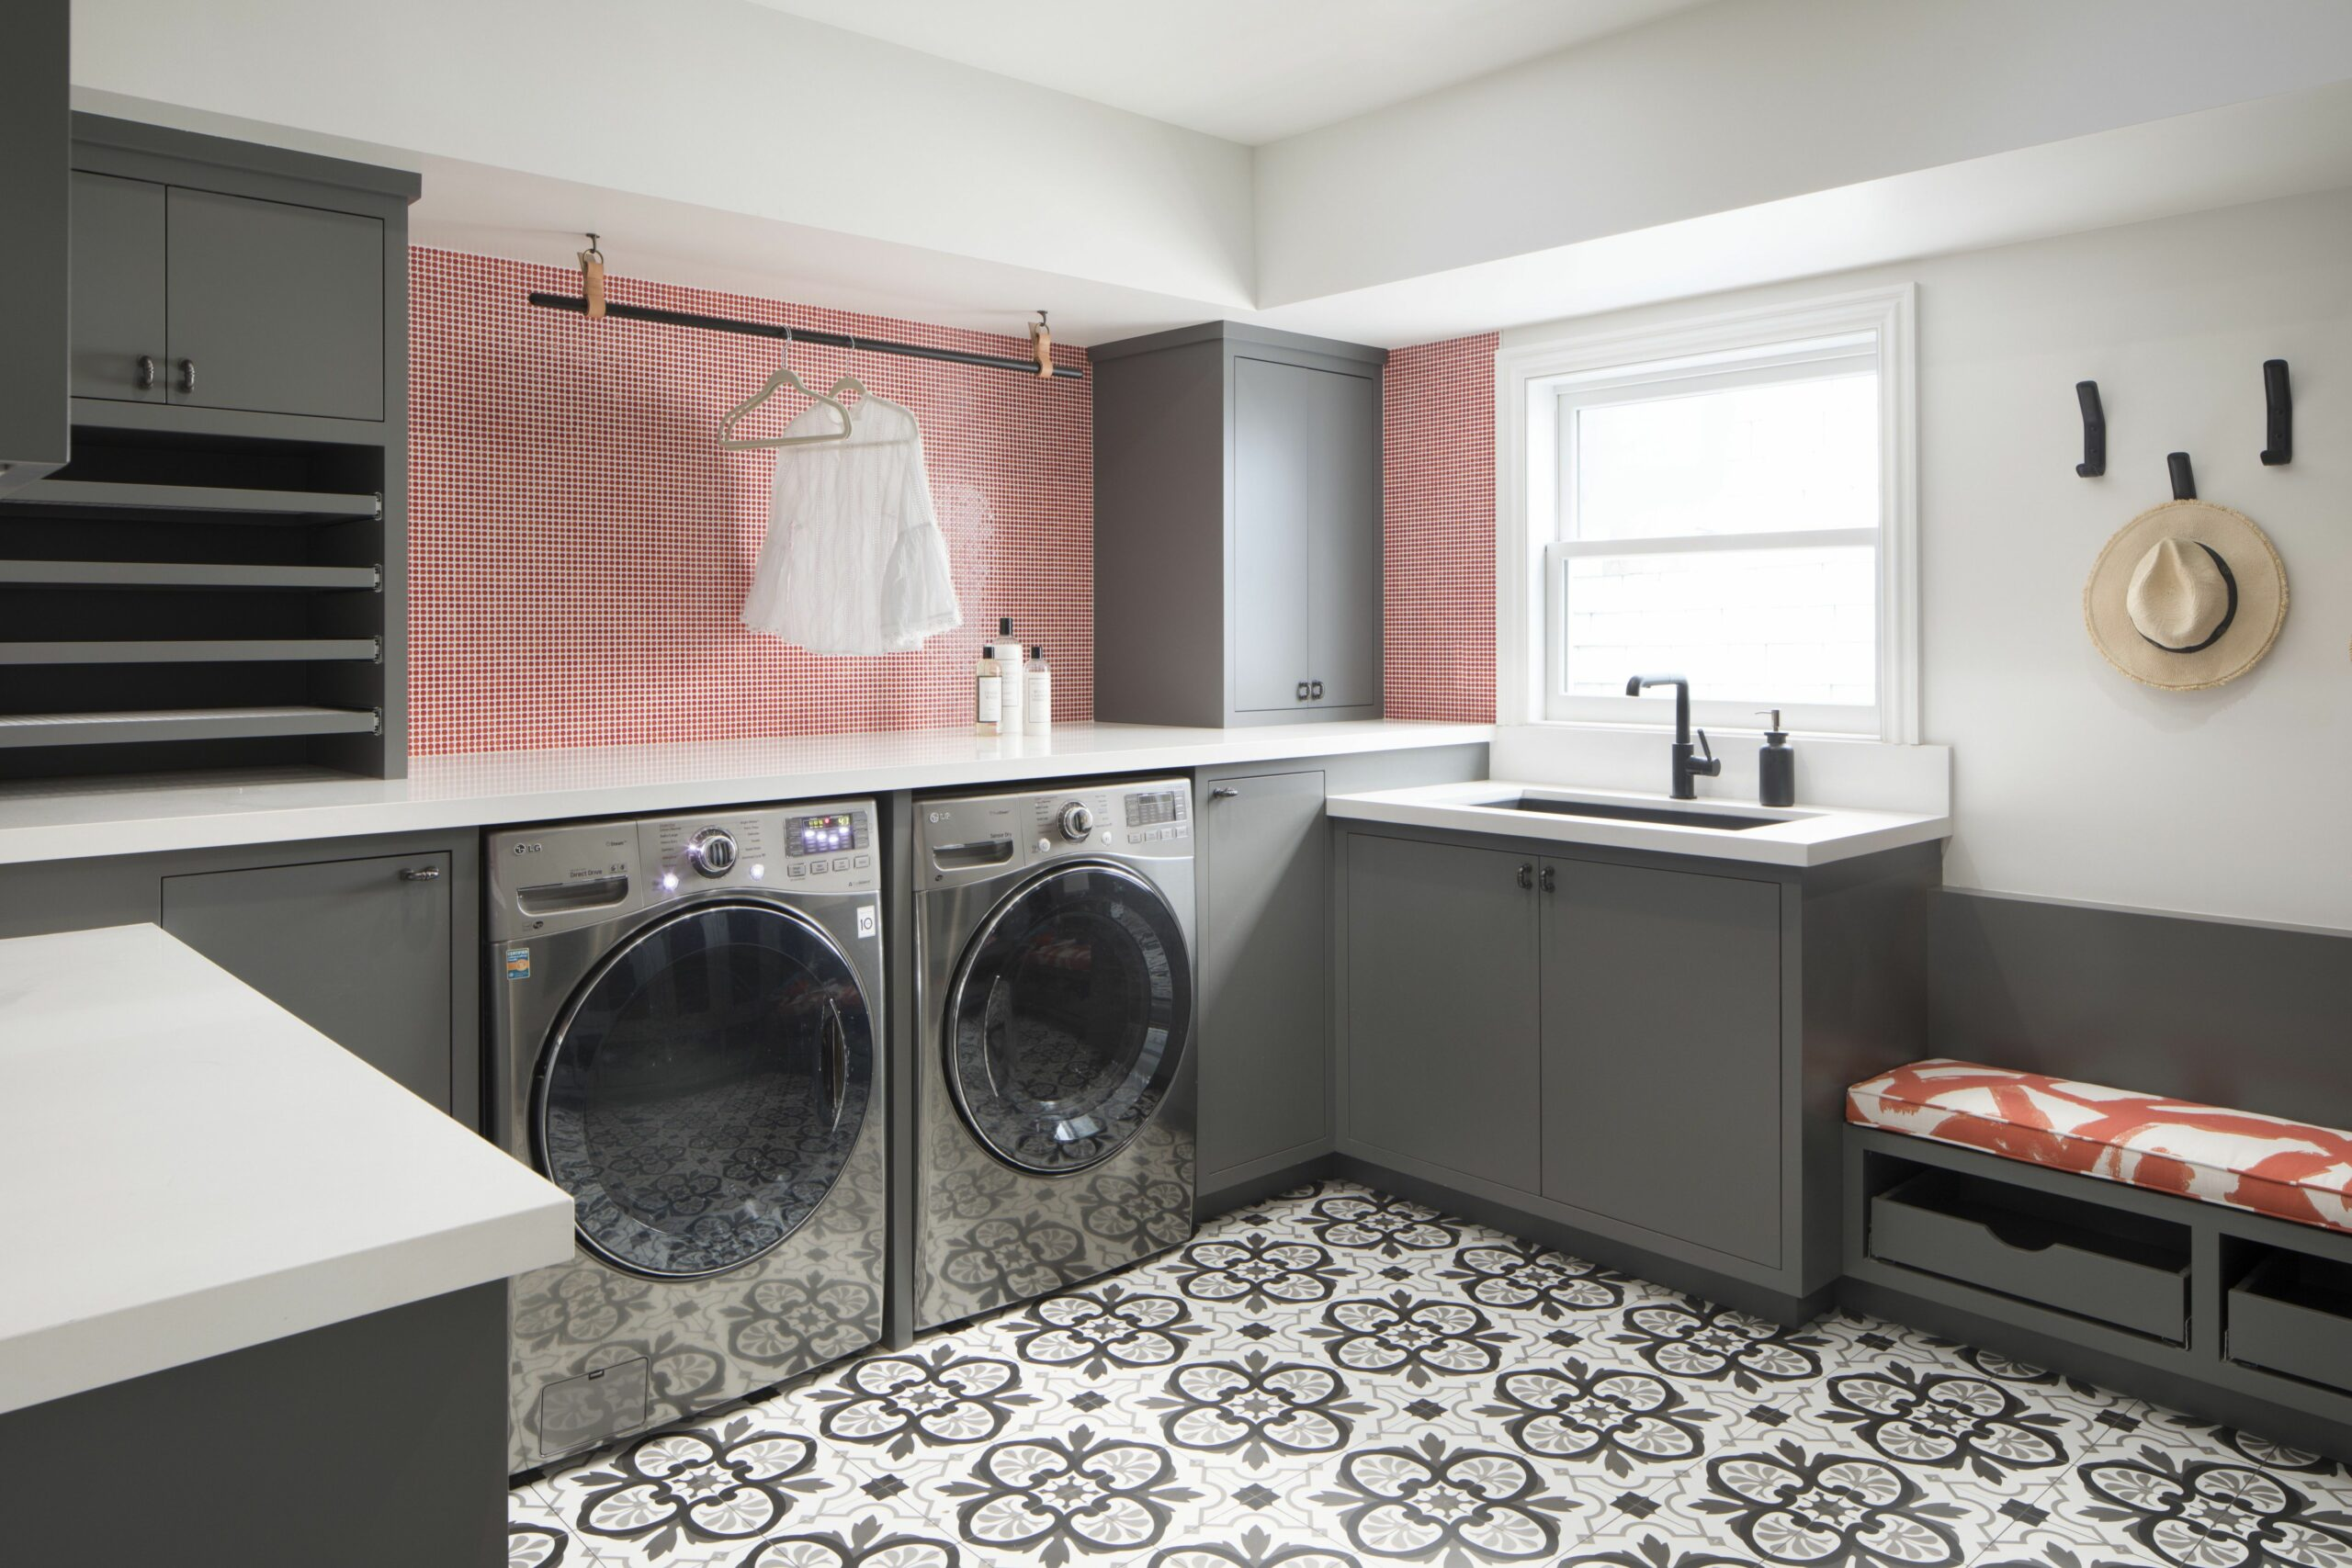 12 Best Laundry Rooms - Lovely & Functional Laundry Room Ideas - mudroom laundry room makeover ideas